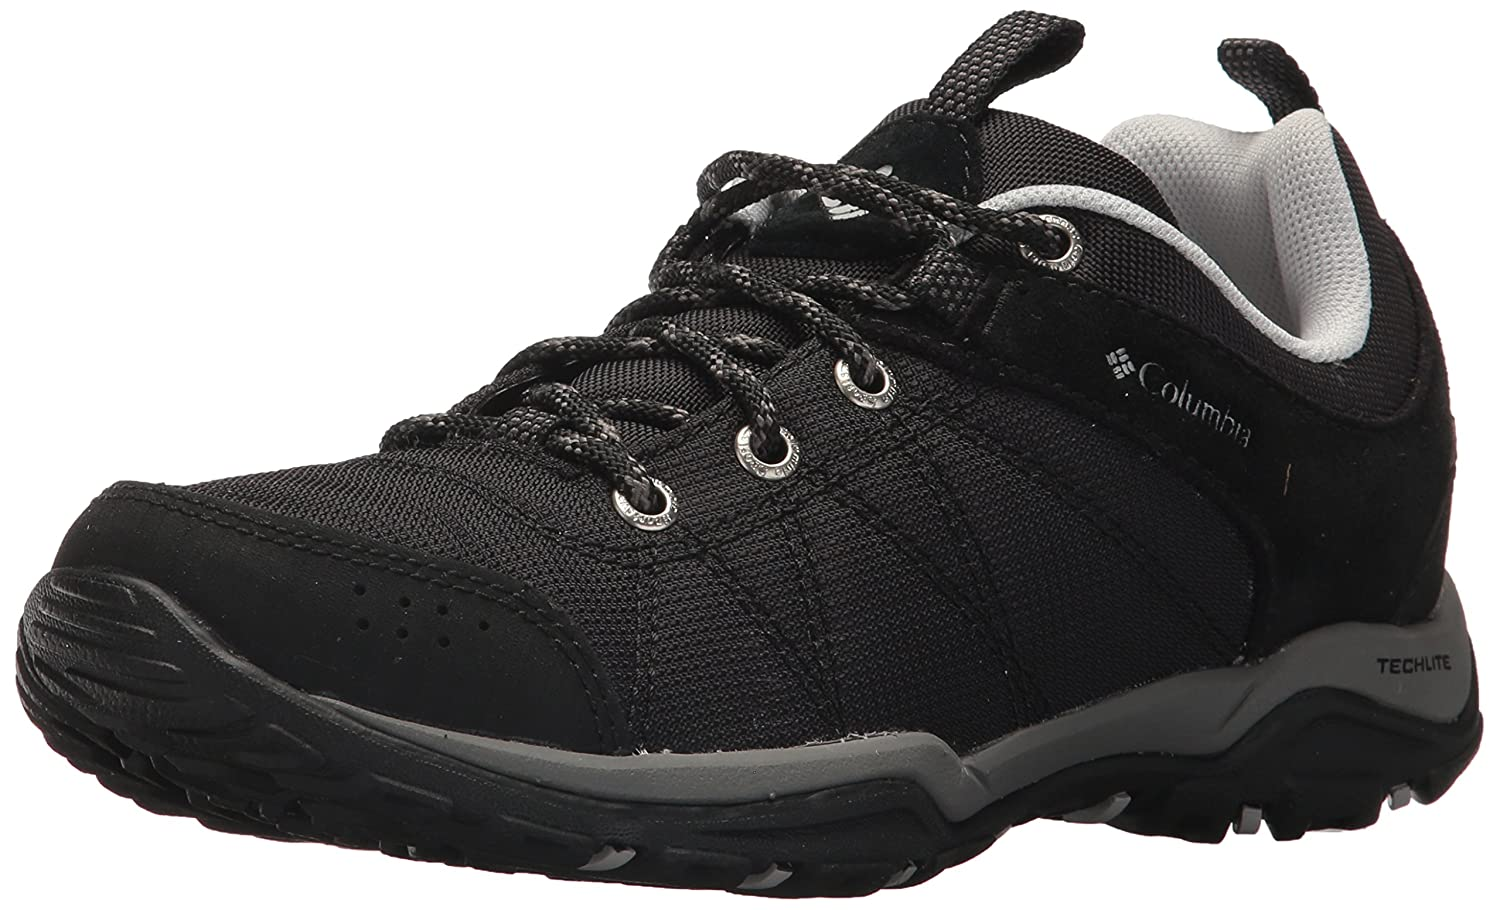 Columbia Women's Fire Venture Textile Hiking Boot B073RNT62L 8.5 B(M) US|Black, Grey Ice